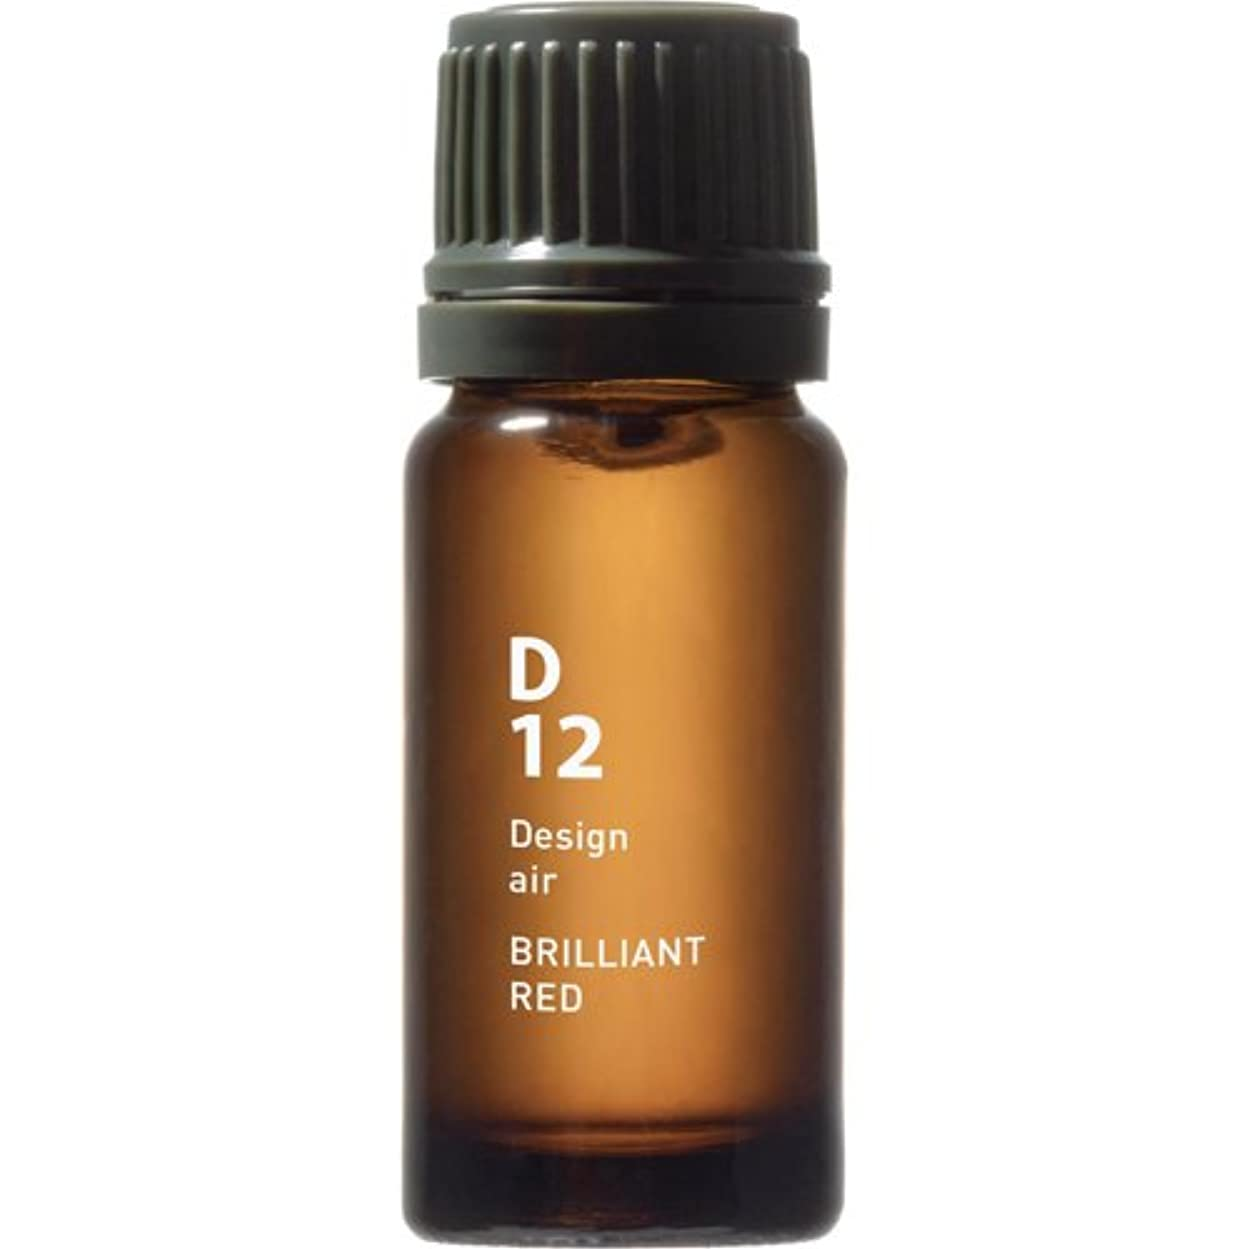 燃料使用法アナロジーD12 BRILLIANT RED Design air 10ml